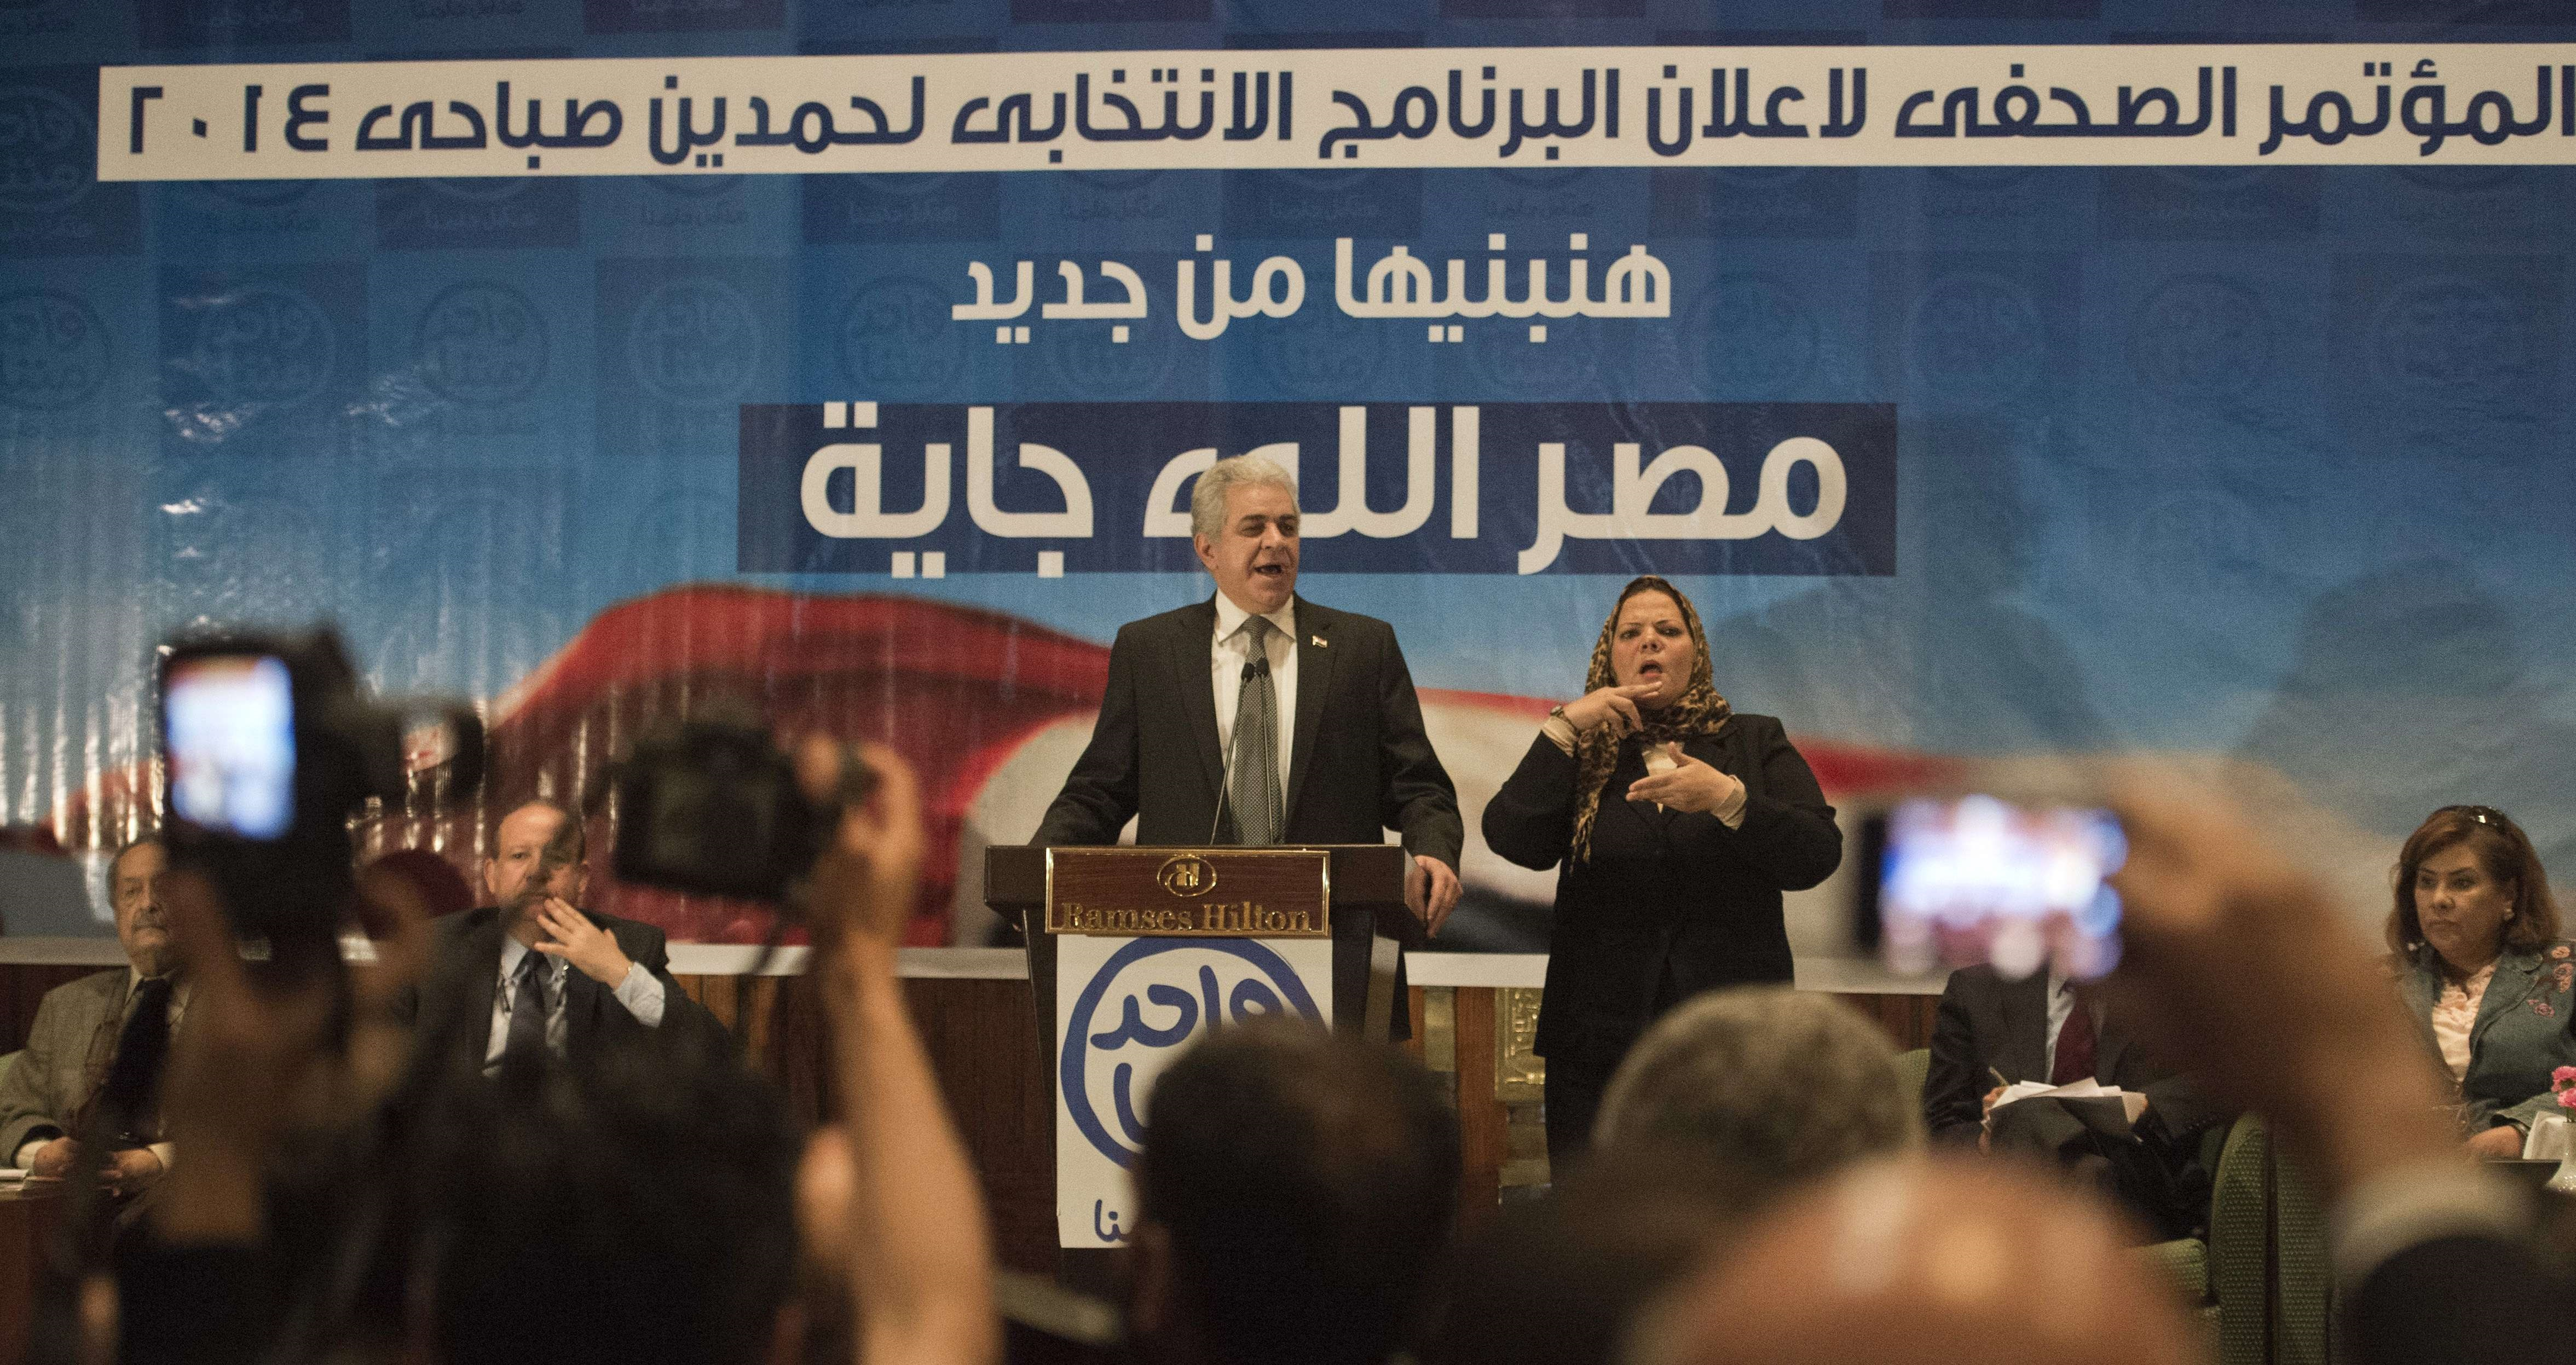 Egyptian leftist leader and presidential candidate Hamdeen Sabahy speaks during a press conference to unveil his programme on 30 April 2014 in Cairo. (AFP Photo)